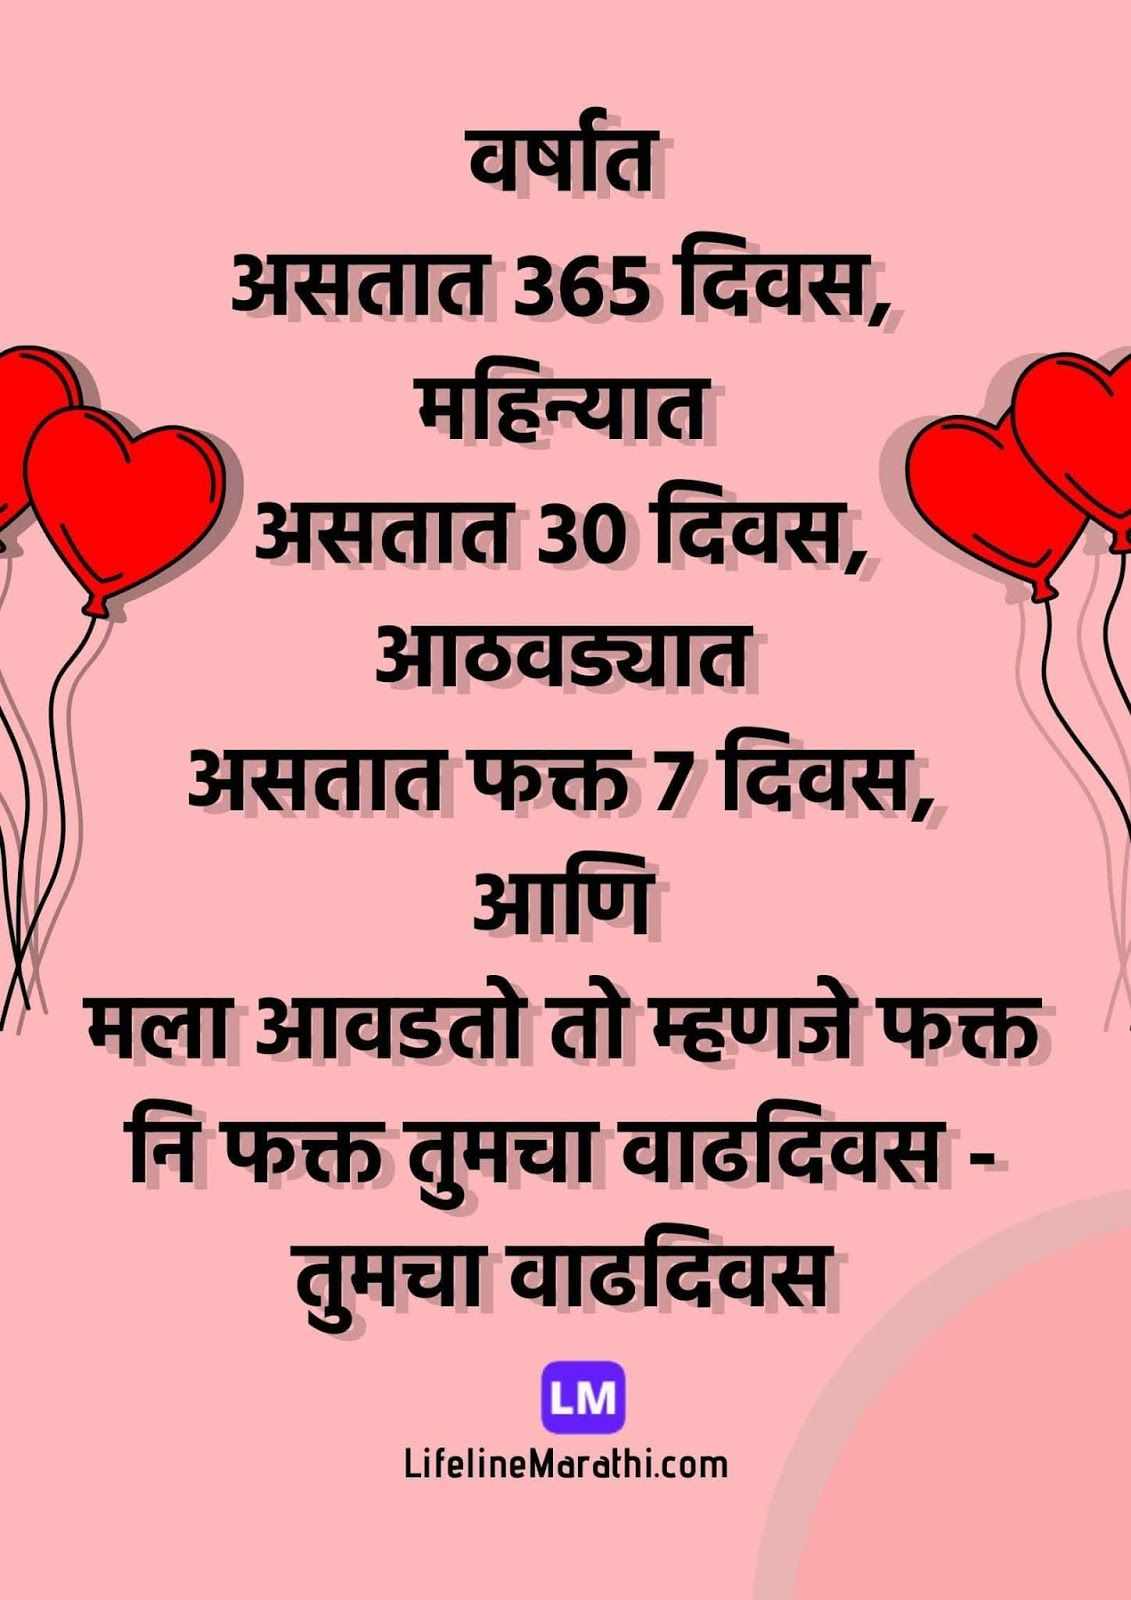 Birthday Wishes In Marathi With Image in 2020 Happy